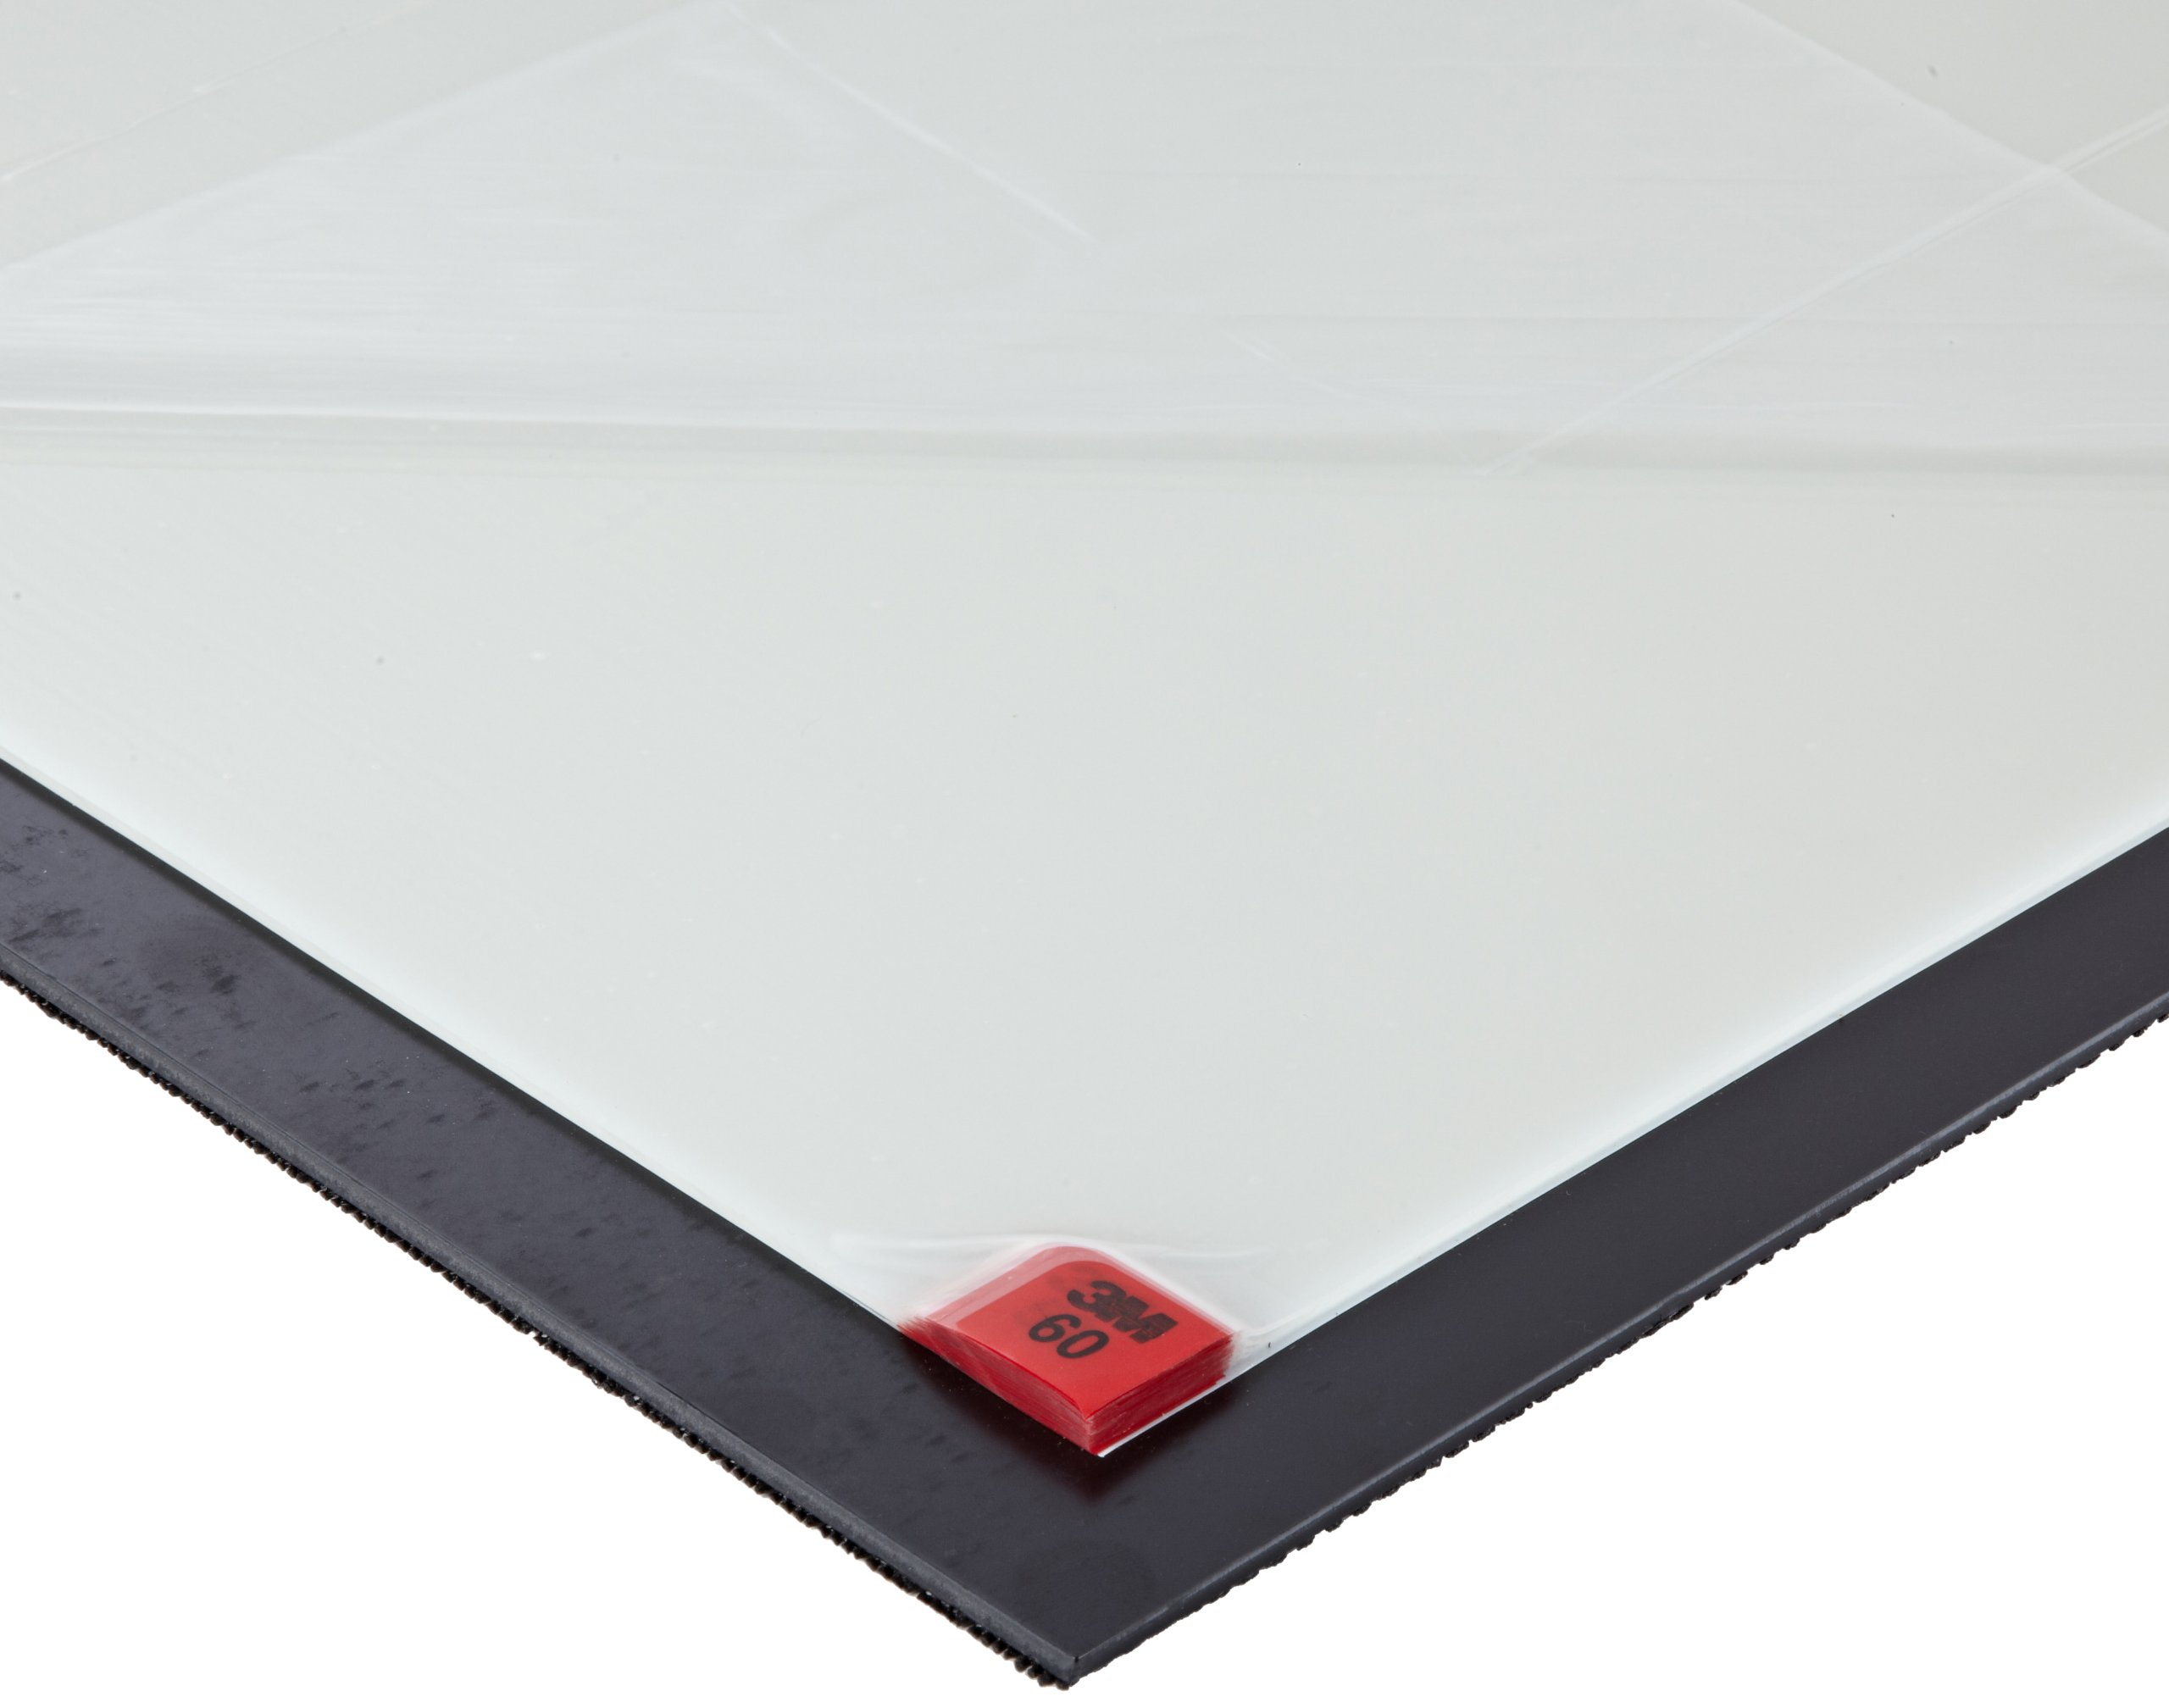 3M Clean-Walk Framed Mat 5840 White on Black, 31-1/2 in x 25-1/2 in Floor Mat (Pack of 1) by 3M